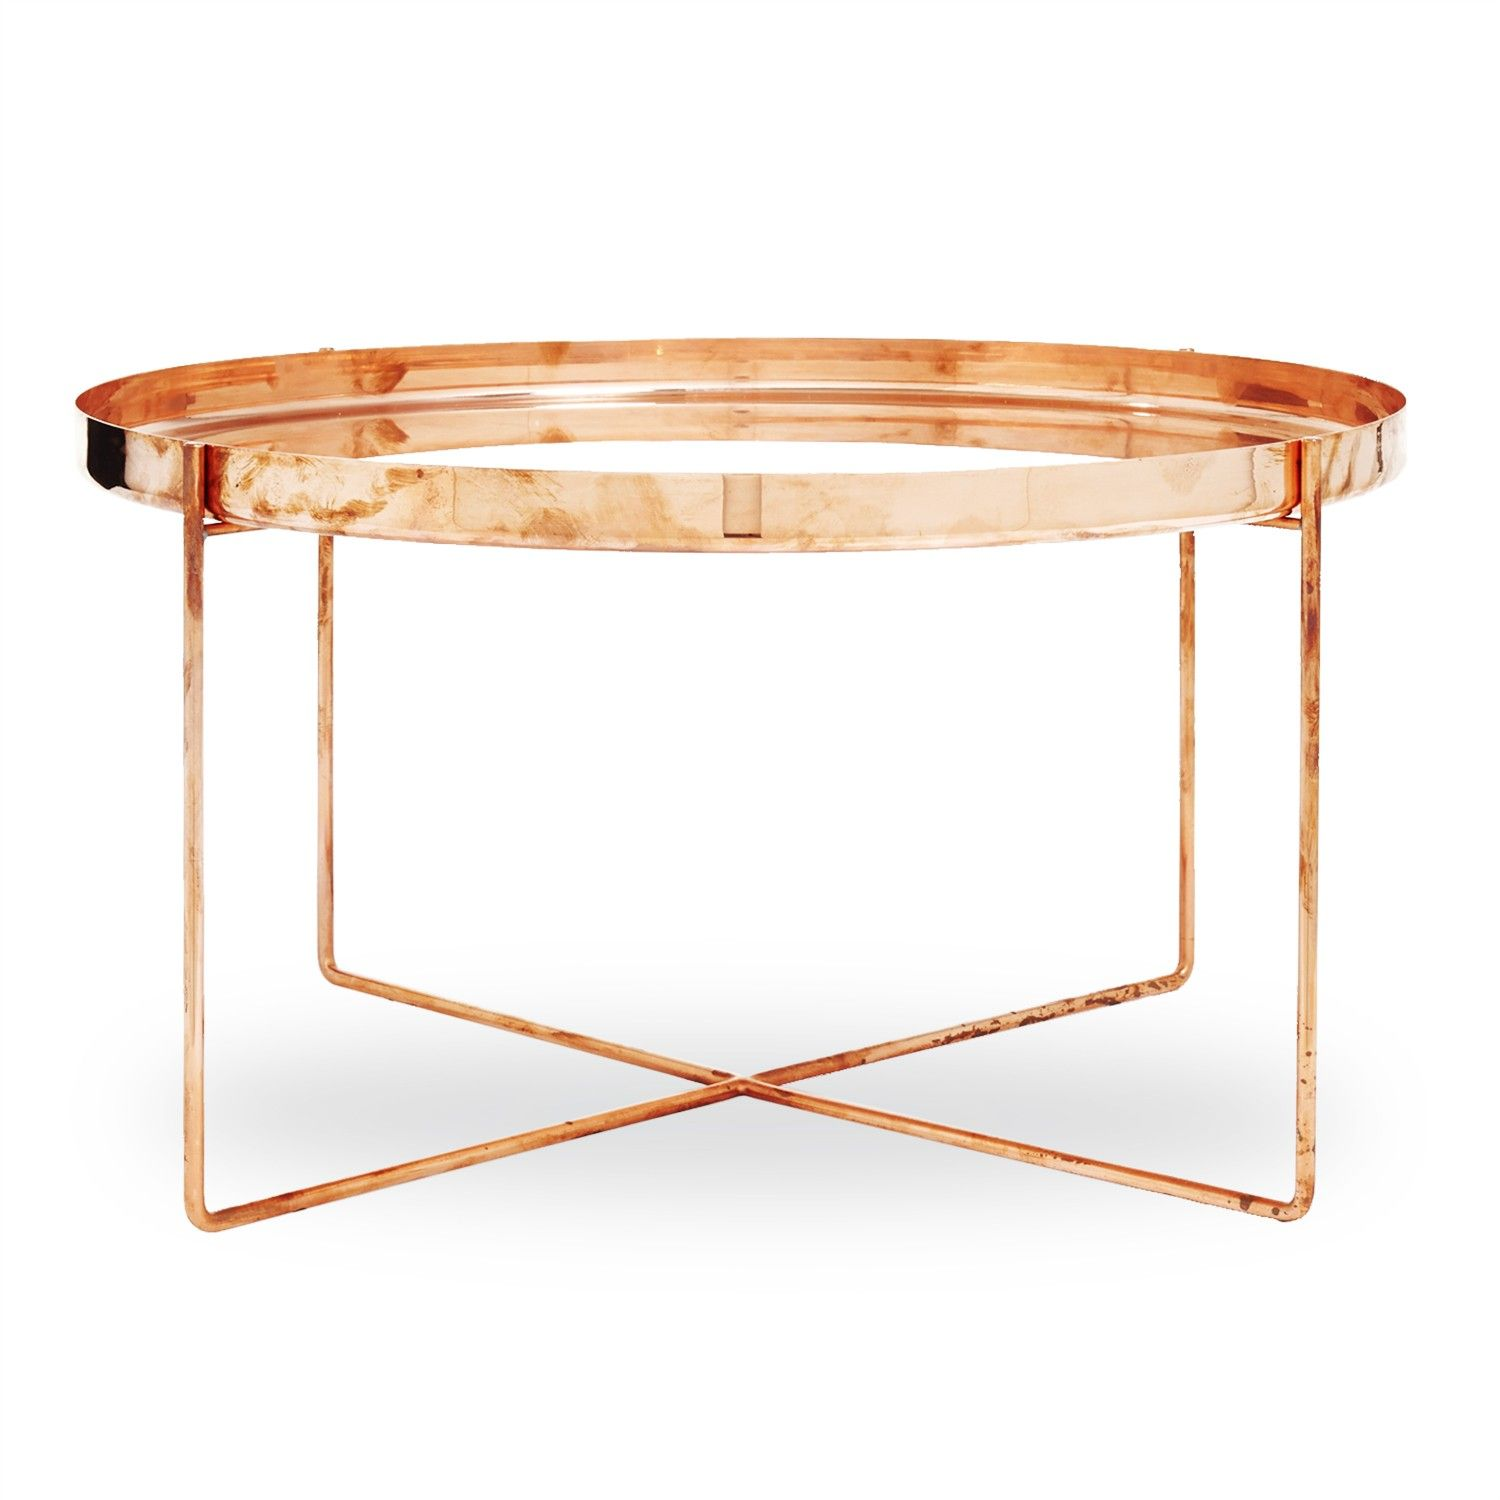 Simple, Yet Strikingly Sculptural, The Ornate Side Table